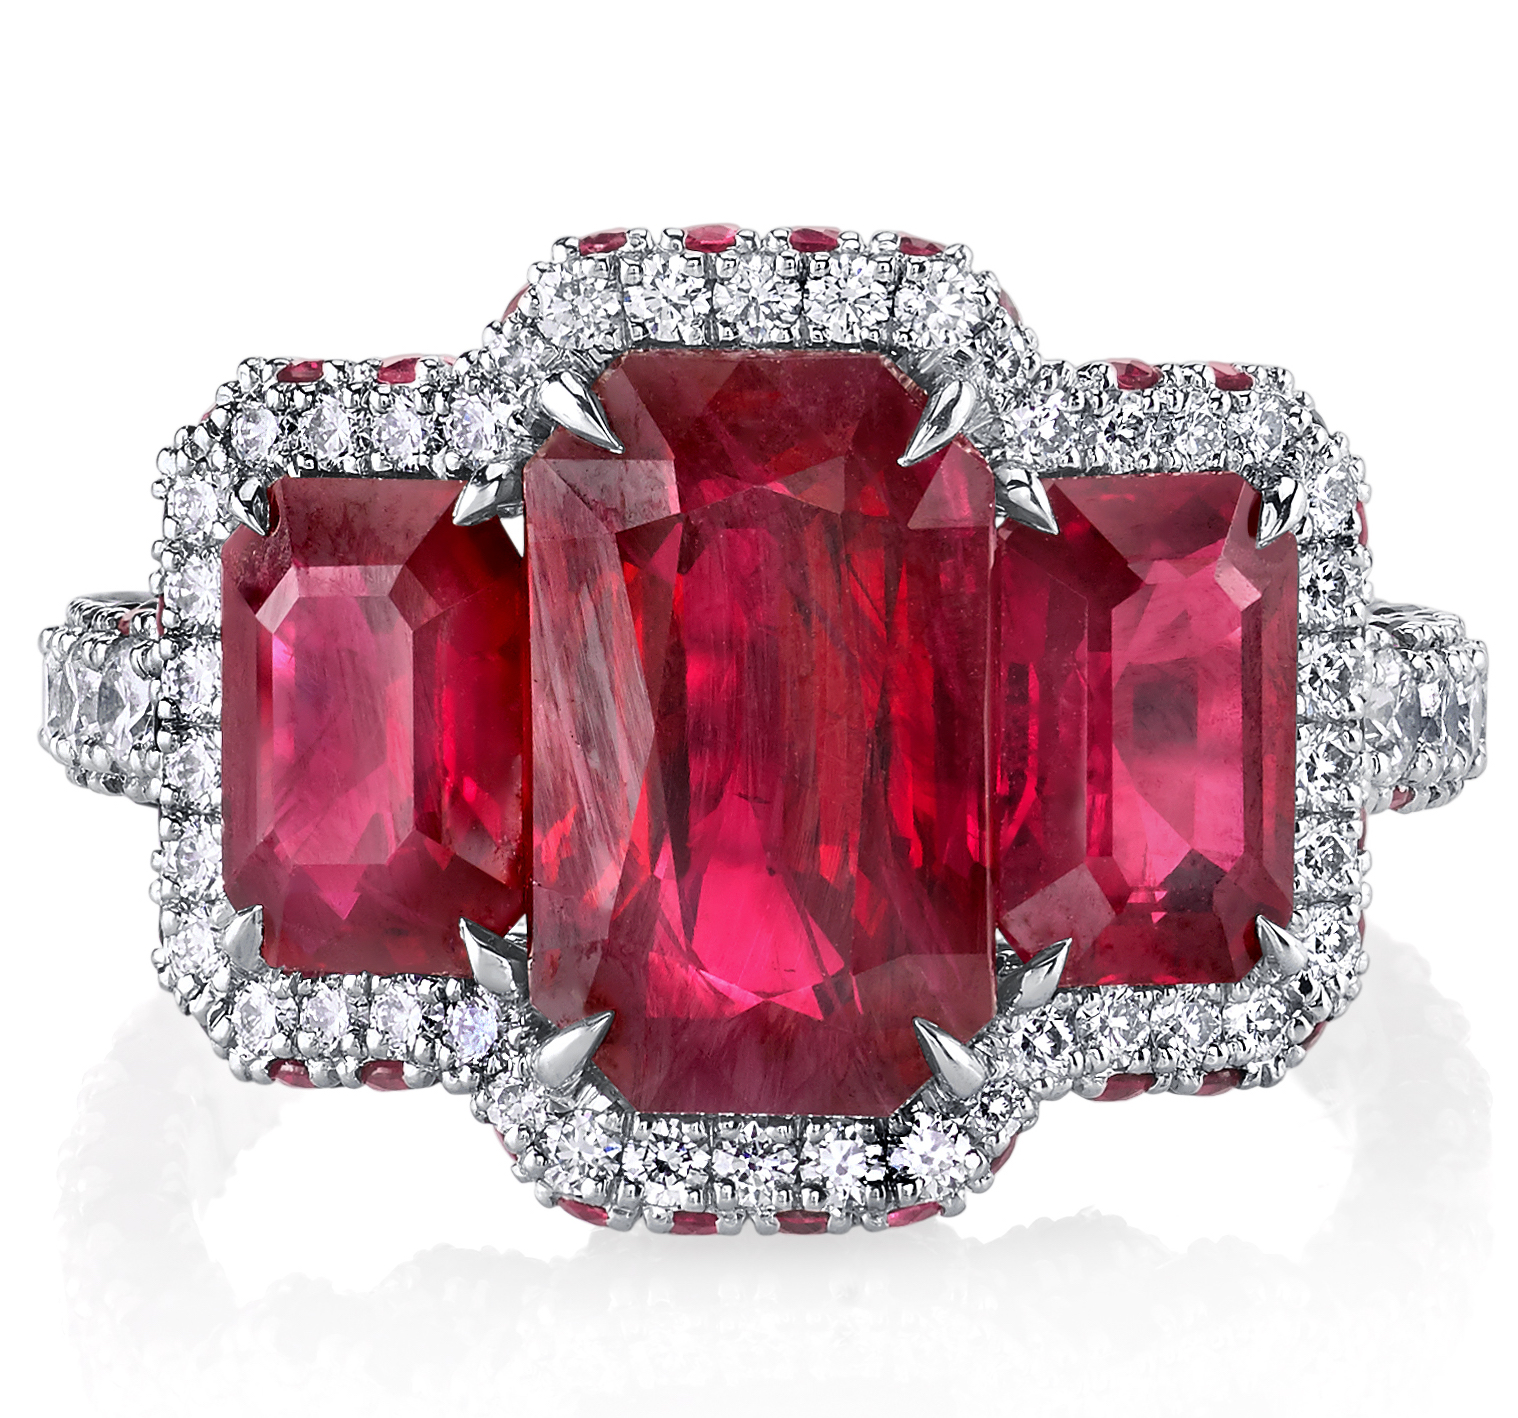 Omi Prive ruby ring